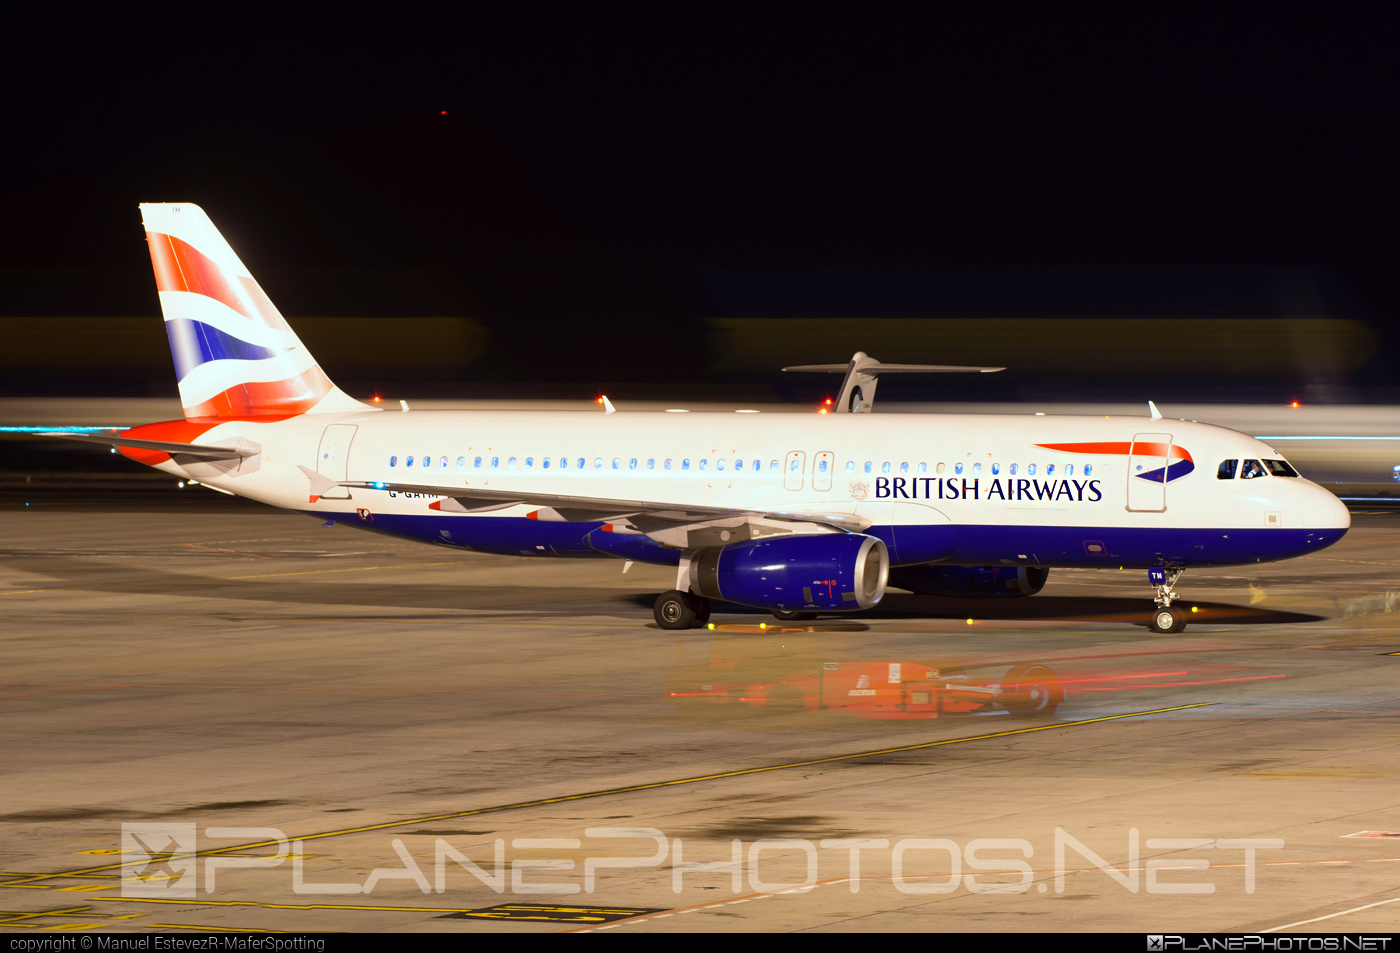 Airbus A320-233 - G-GATM operated by British Airways #a320 #a320family #airbus #airbus320 #britishairways